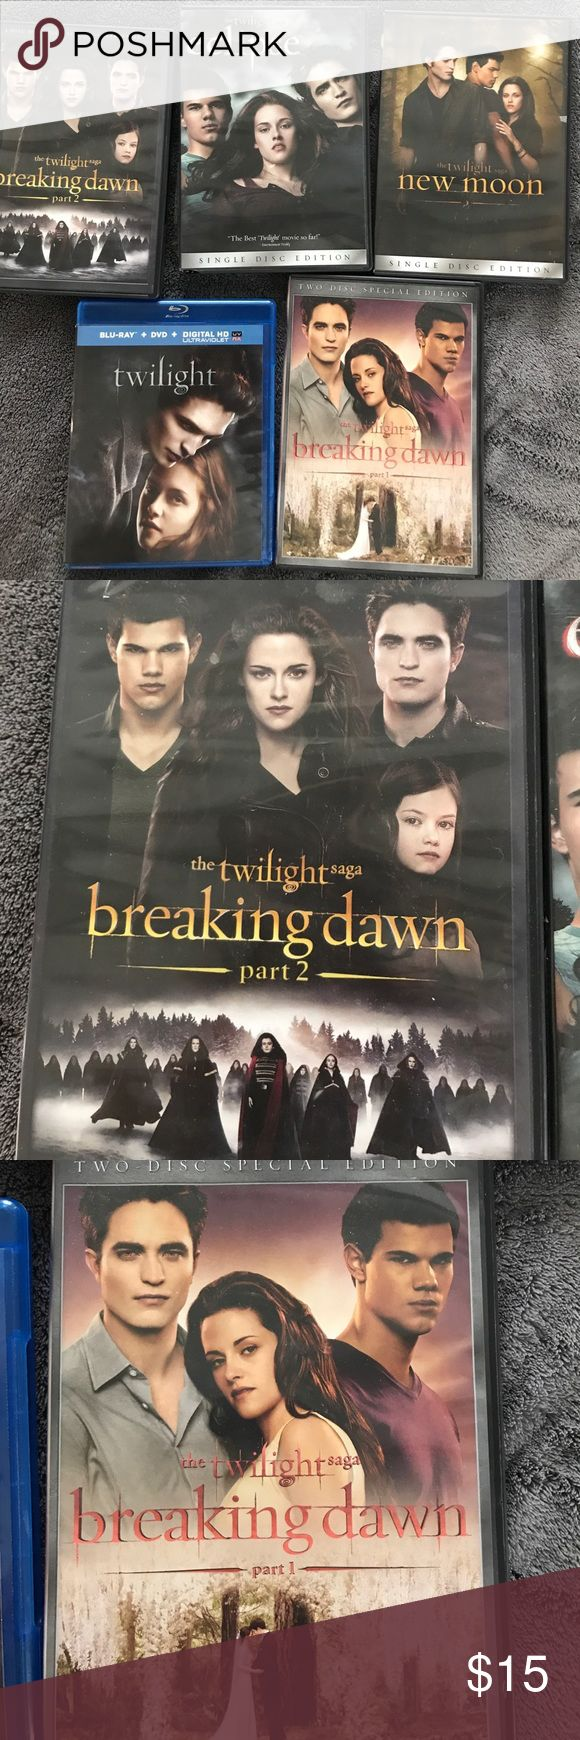 All five movies from the twilight Saga Call DVD/Blu-ray's work perfectly fine. Twilight, new moon, eclipse, breaking Dawn part one and breaking Dawn part two. I also have all five of the books that I will be selling separately The twilight saga Other